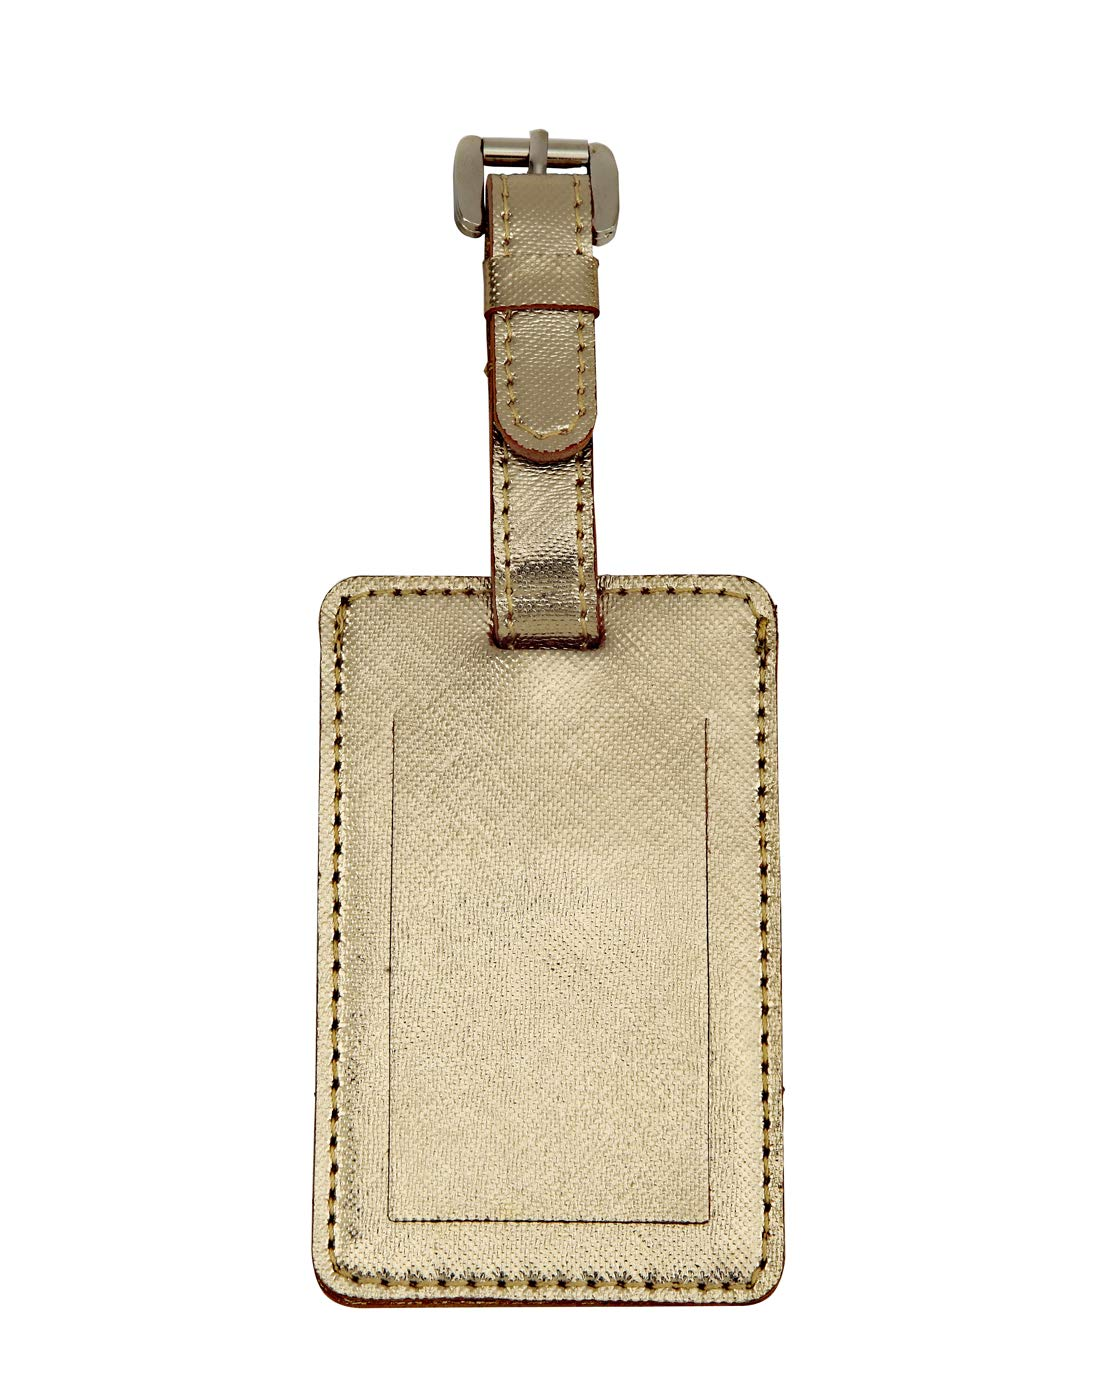 JL Collections Beige Leather Passport Holder with Gold Luggage Tag Gift Sets Pack of 3